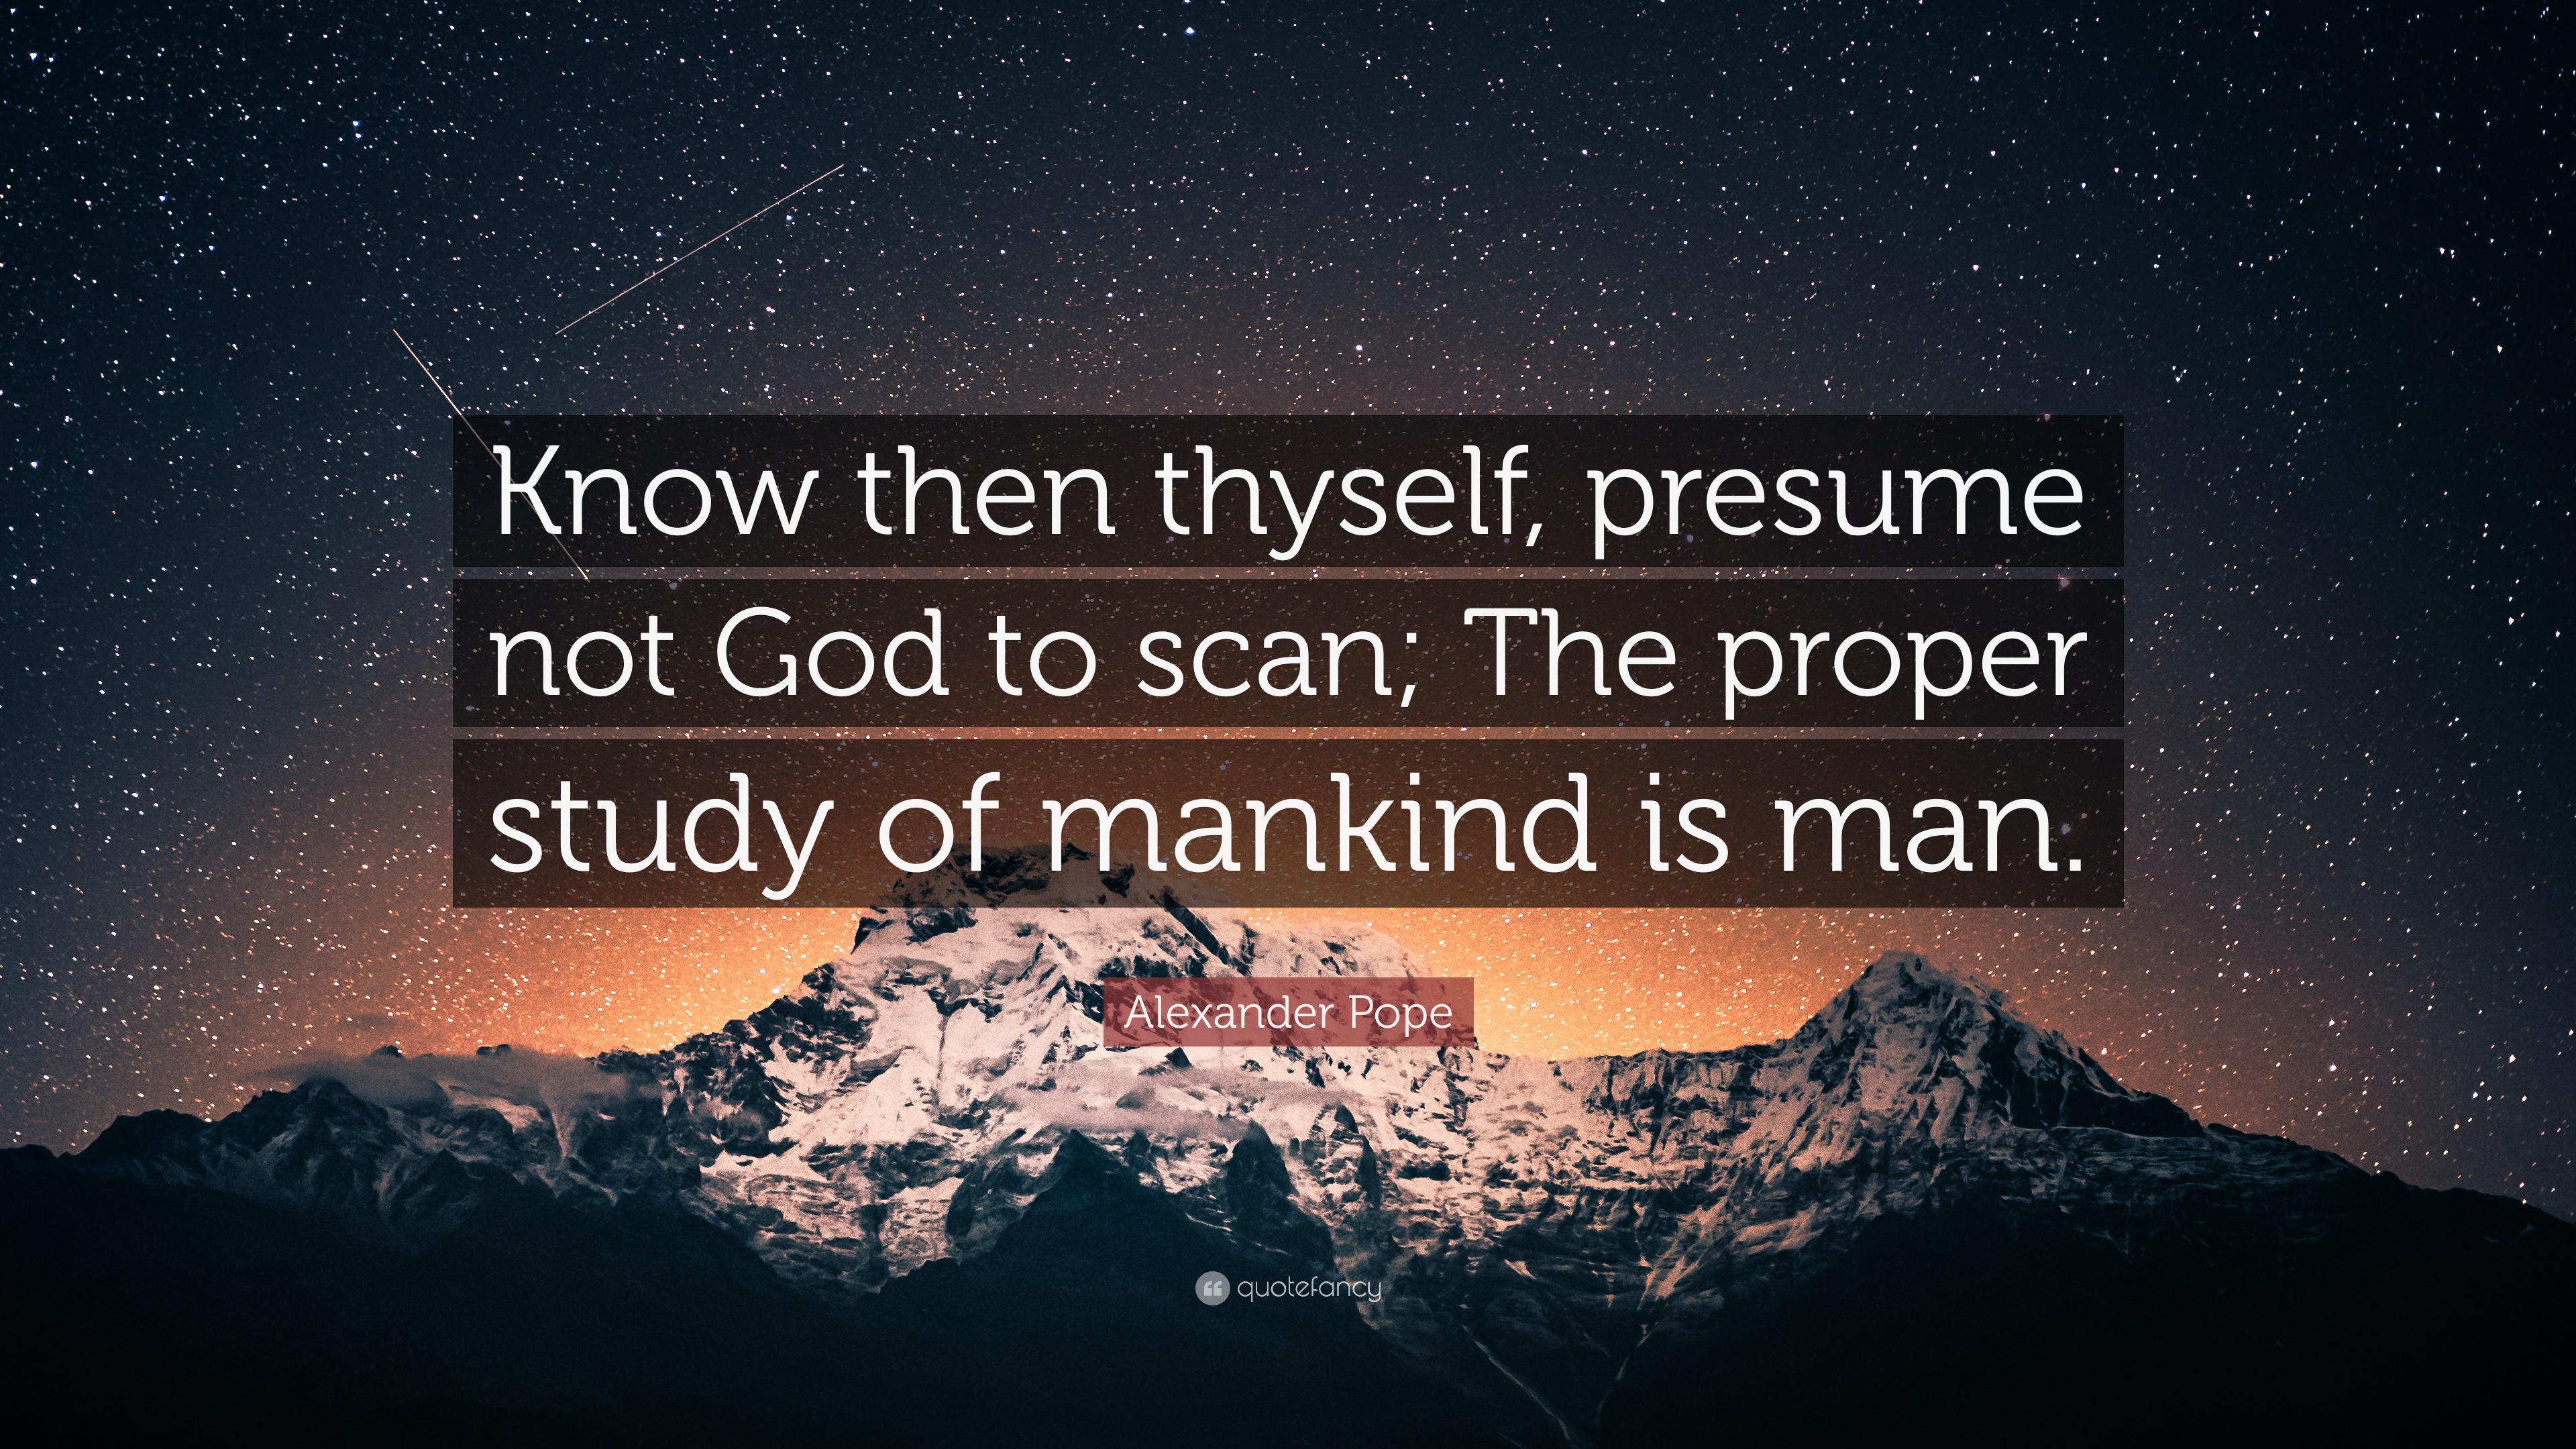 High Quality Alexander Pope Quote: U201cKnow Then Thyself, Presume Not God To Scan; The